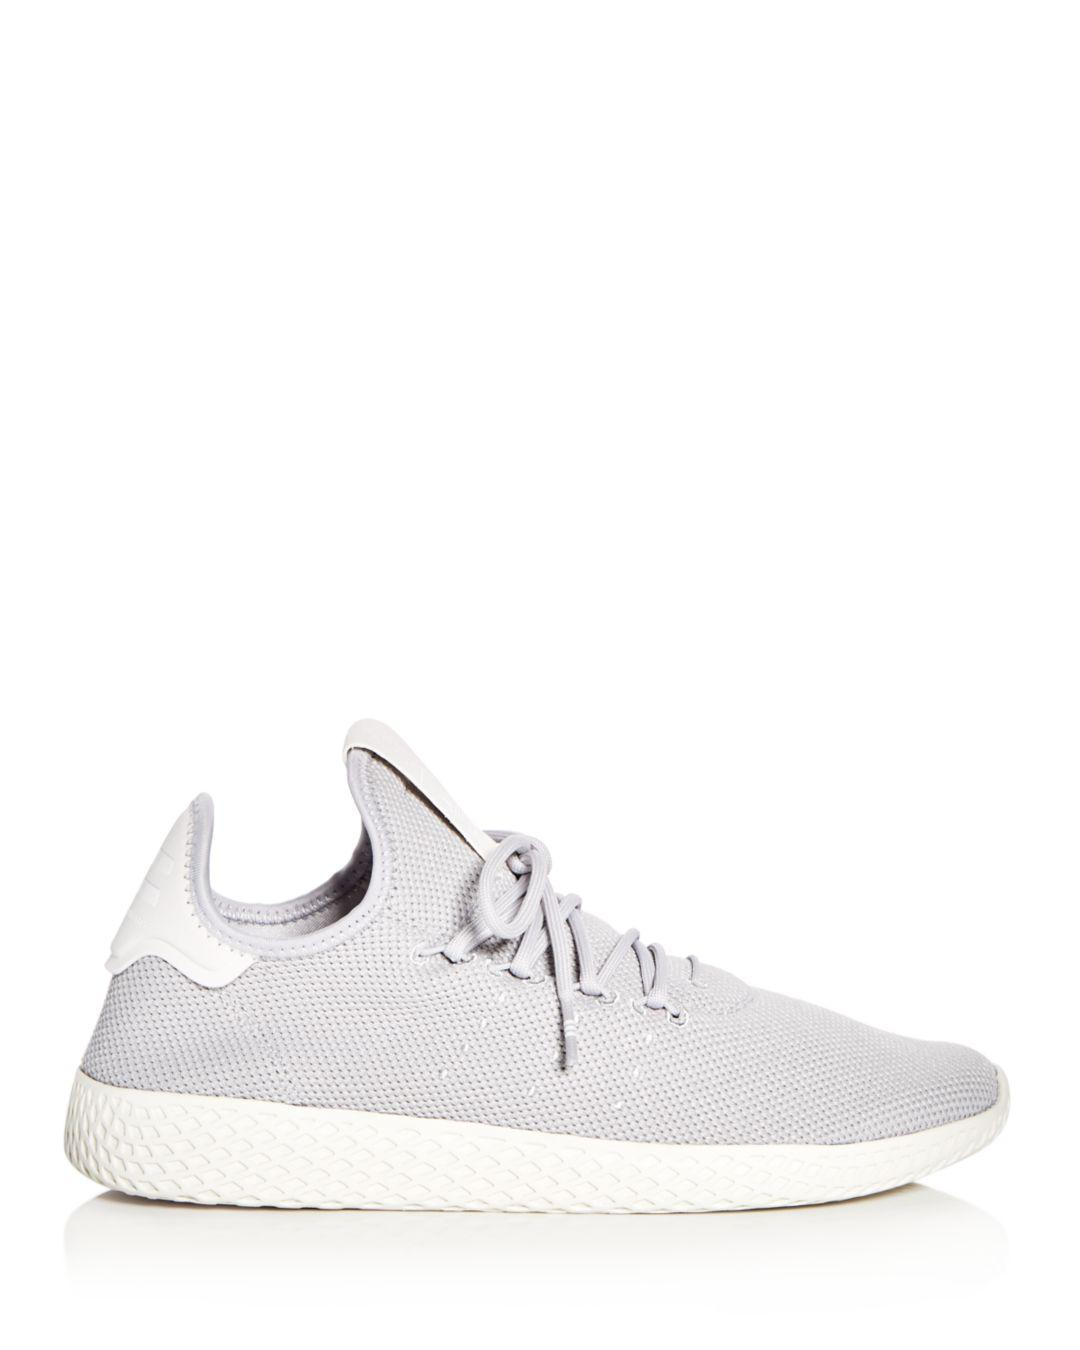 af7b1545a17e5 Lyst - adidas Pharrell Williams Women s Tennis Hu Lace Up Sneakers ...